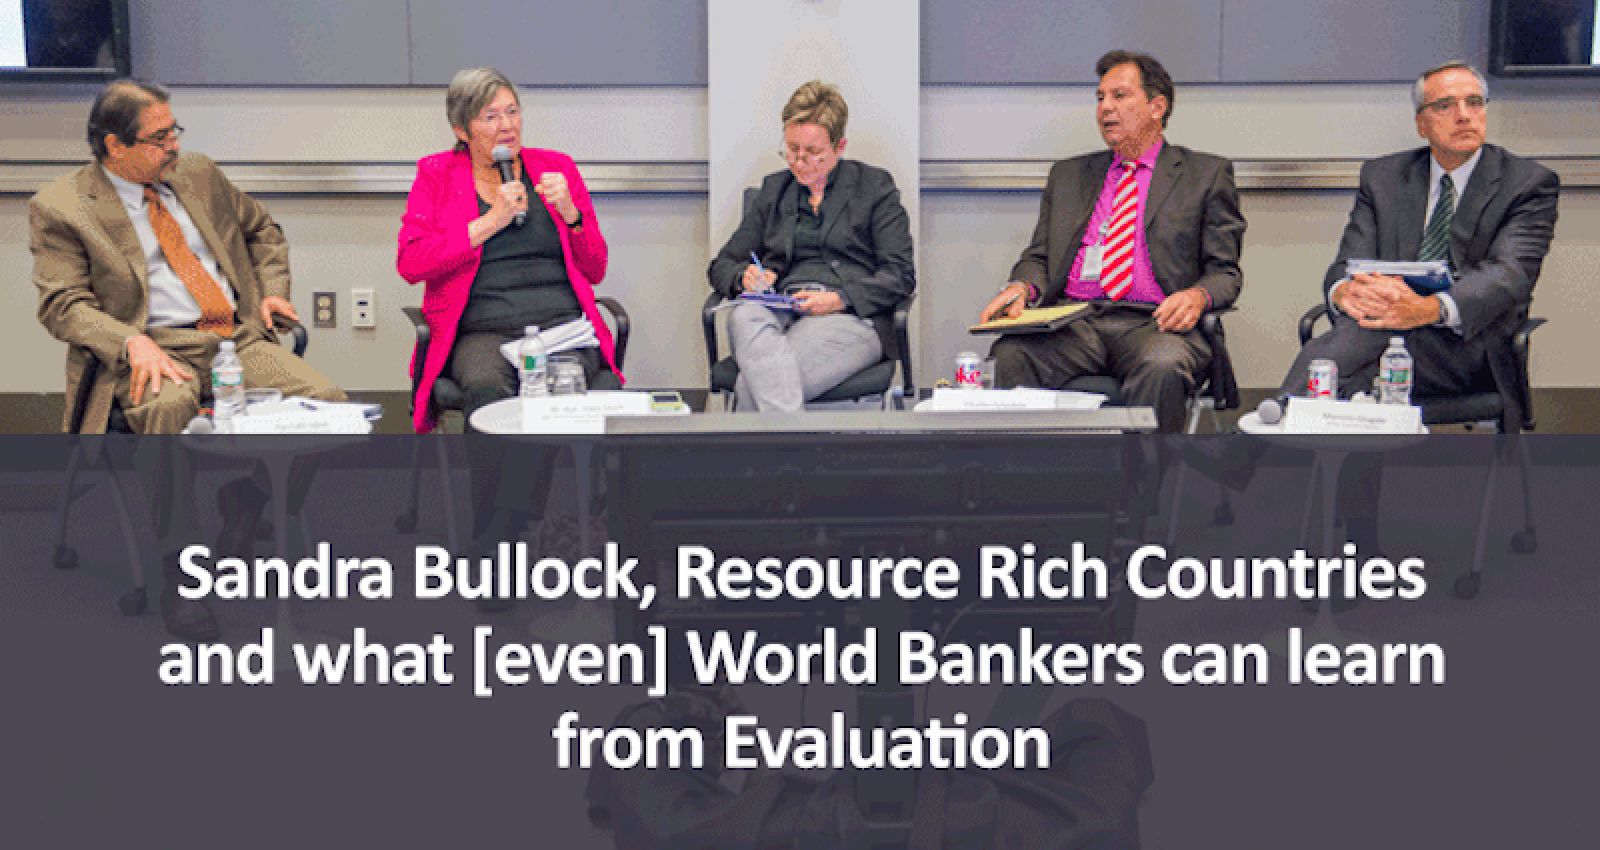 Sandra Bullock, Resource Rich Countries and what [even] World Bankers can learn from Evaluation